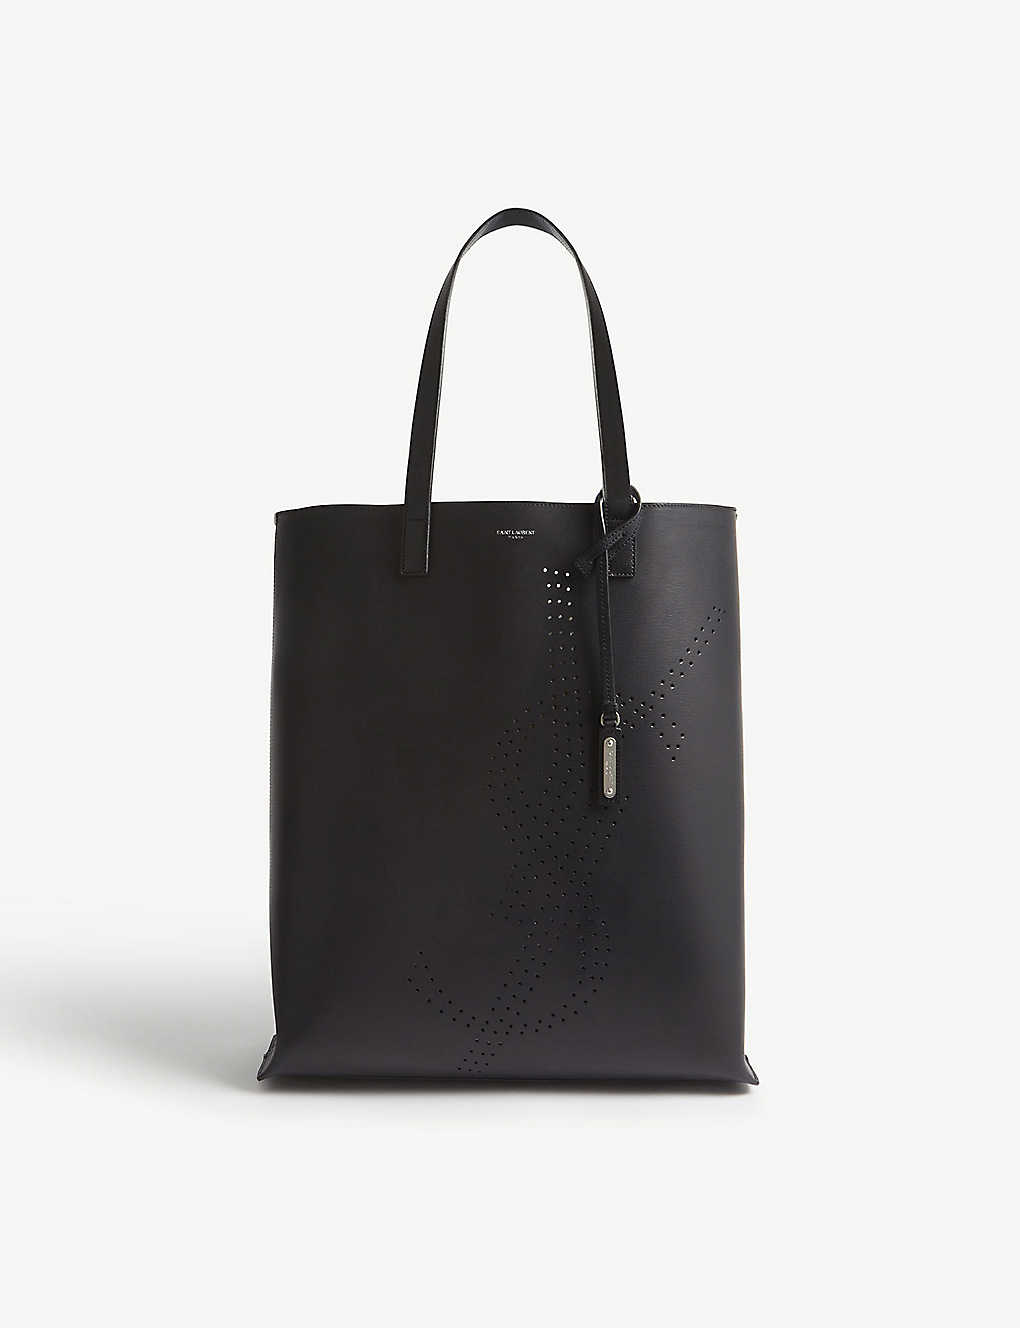 98c6f2c8675 SAINT LAURENT - YSL recycled leather tote | Selfridges.com